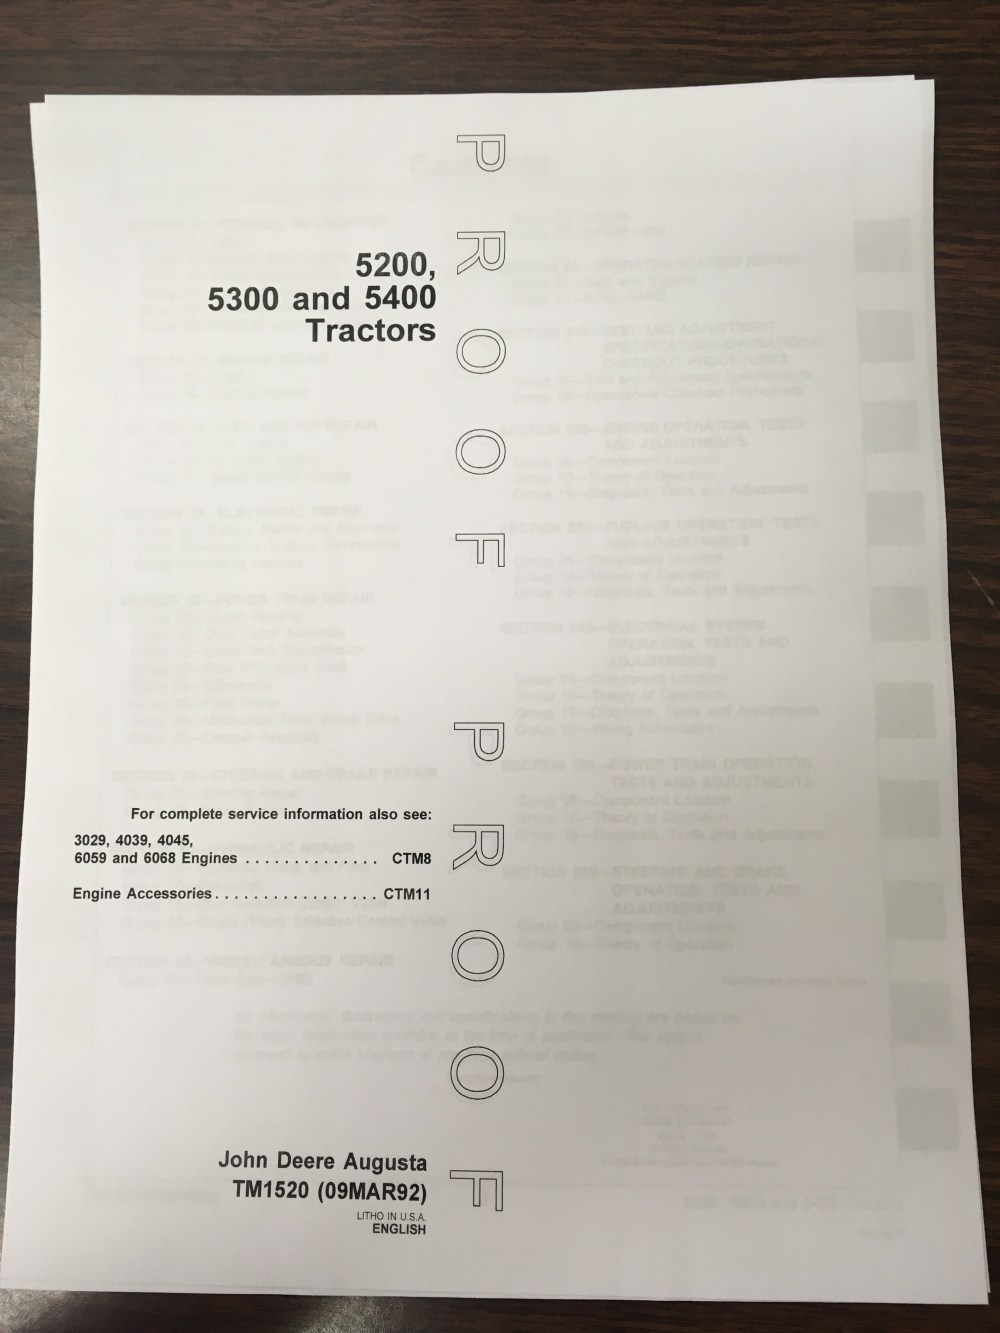 medium resolution of john deere 5200 5300 5400 tractors technical manual proof edition jd tm1520 book finney equipment and parts